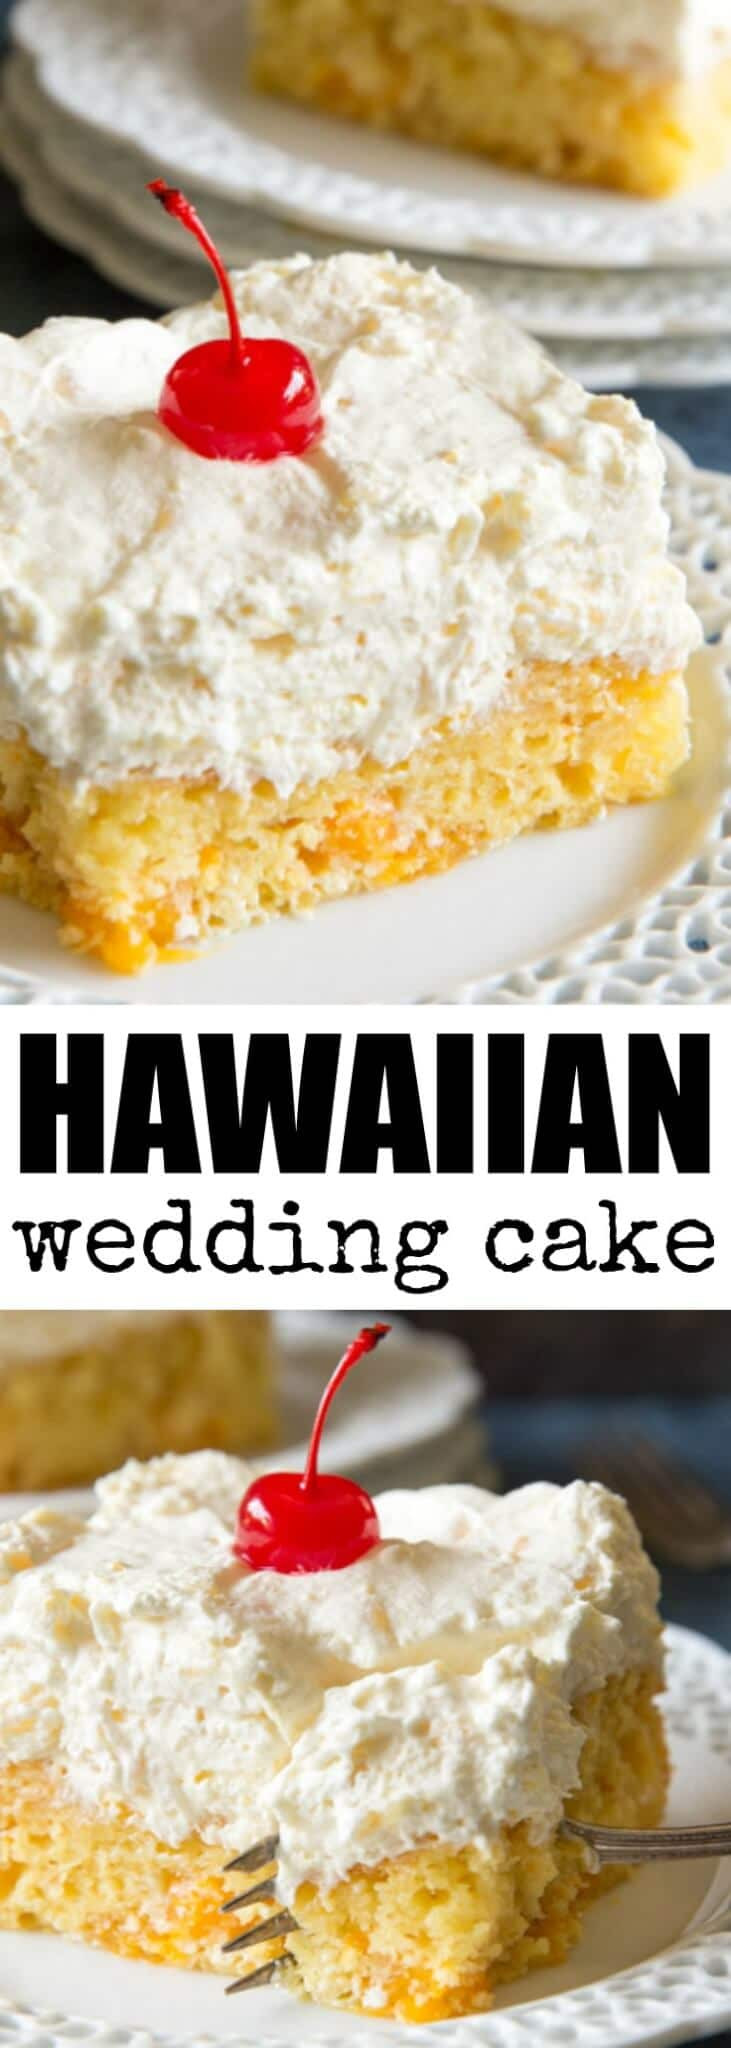 Recipe For Hawaiian Wedding Cake  hawaiian wedding cake recipe with mandarin oranges